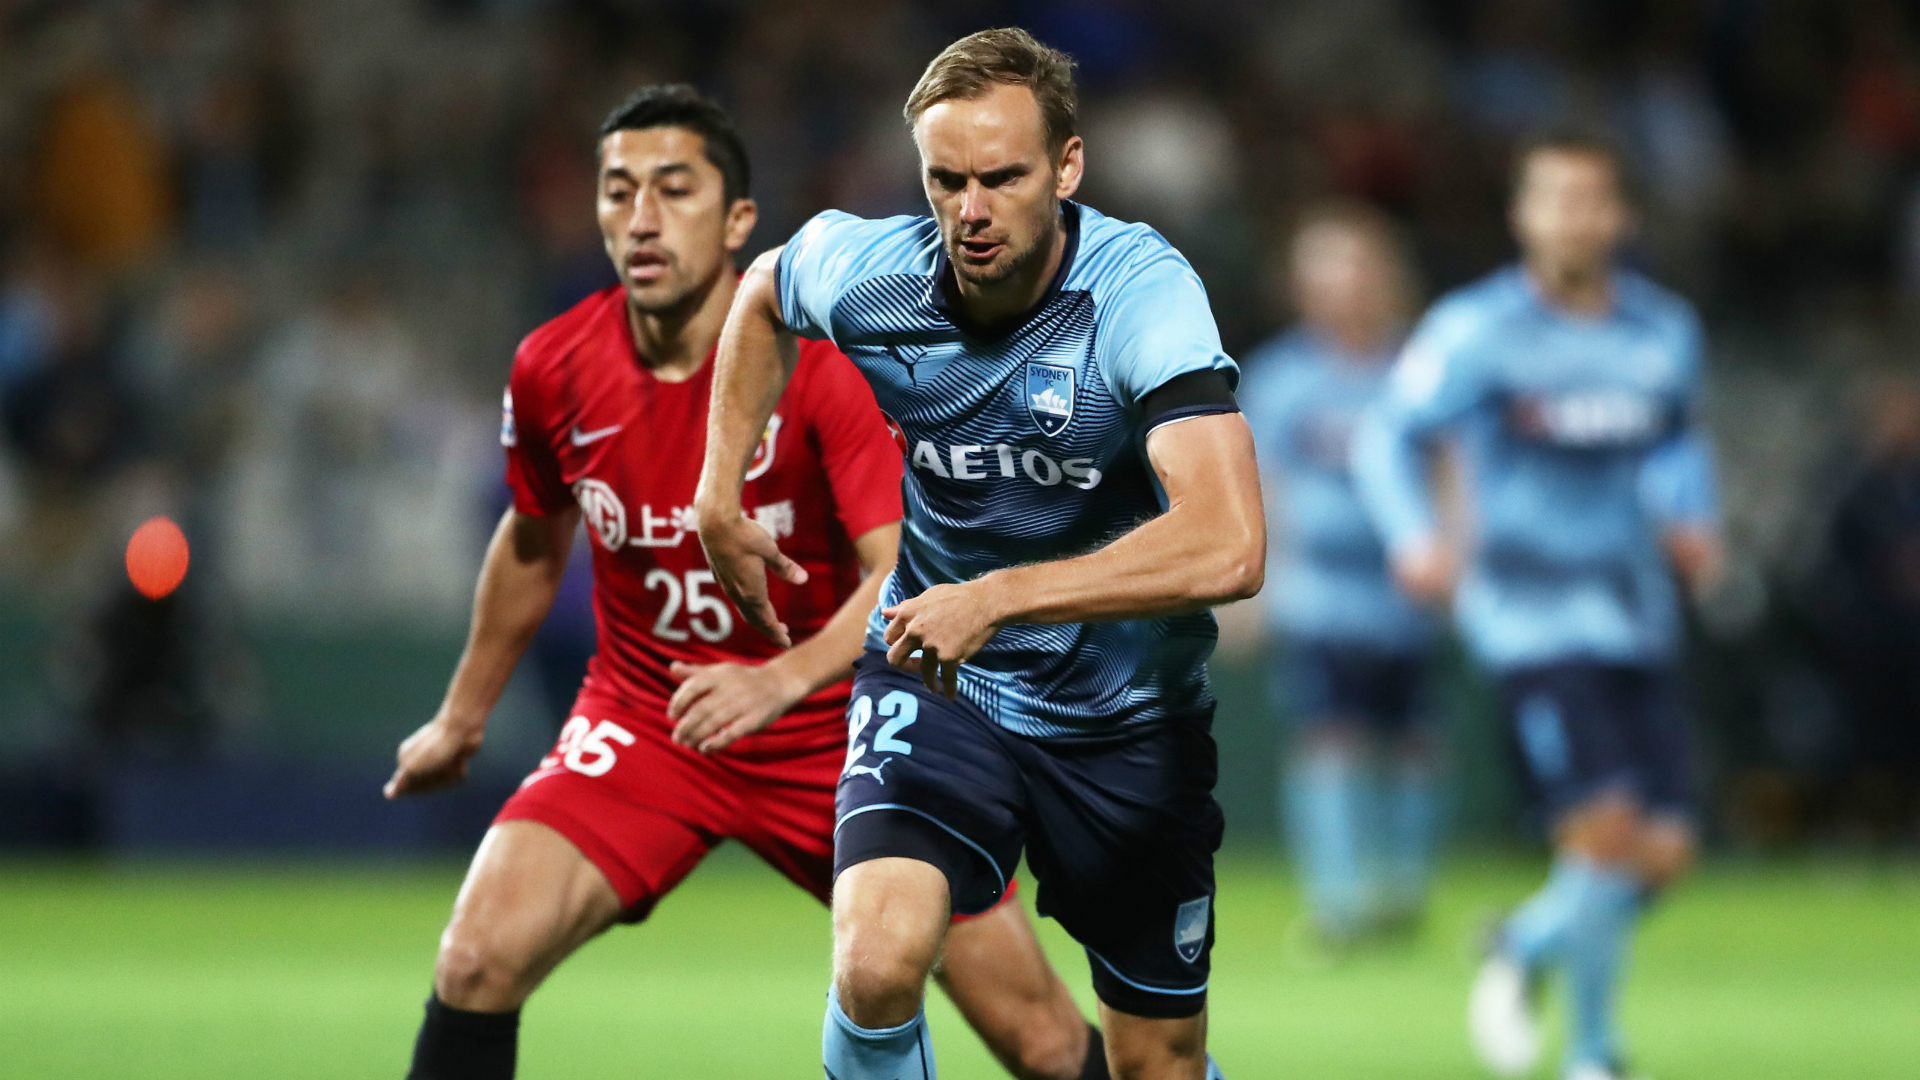 De Jong eyeing A-League title and Champions League progression